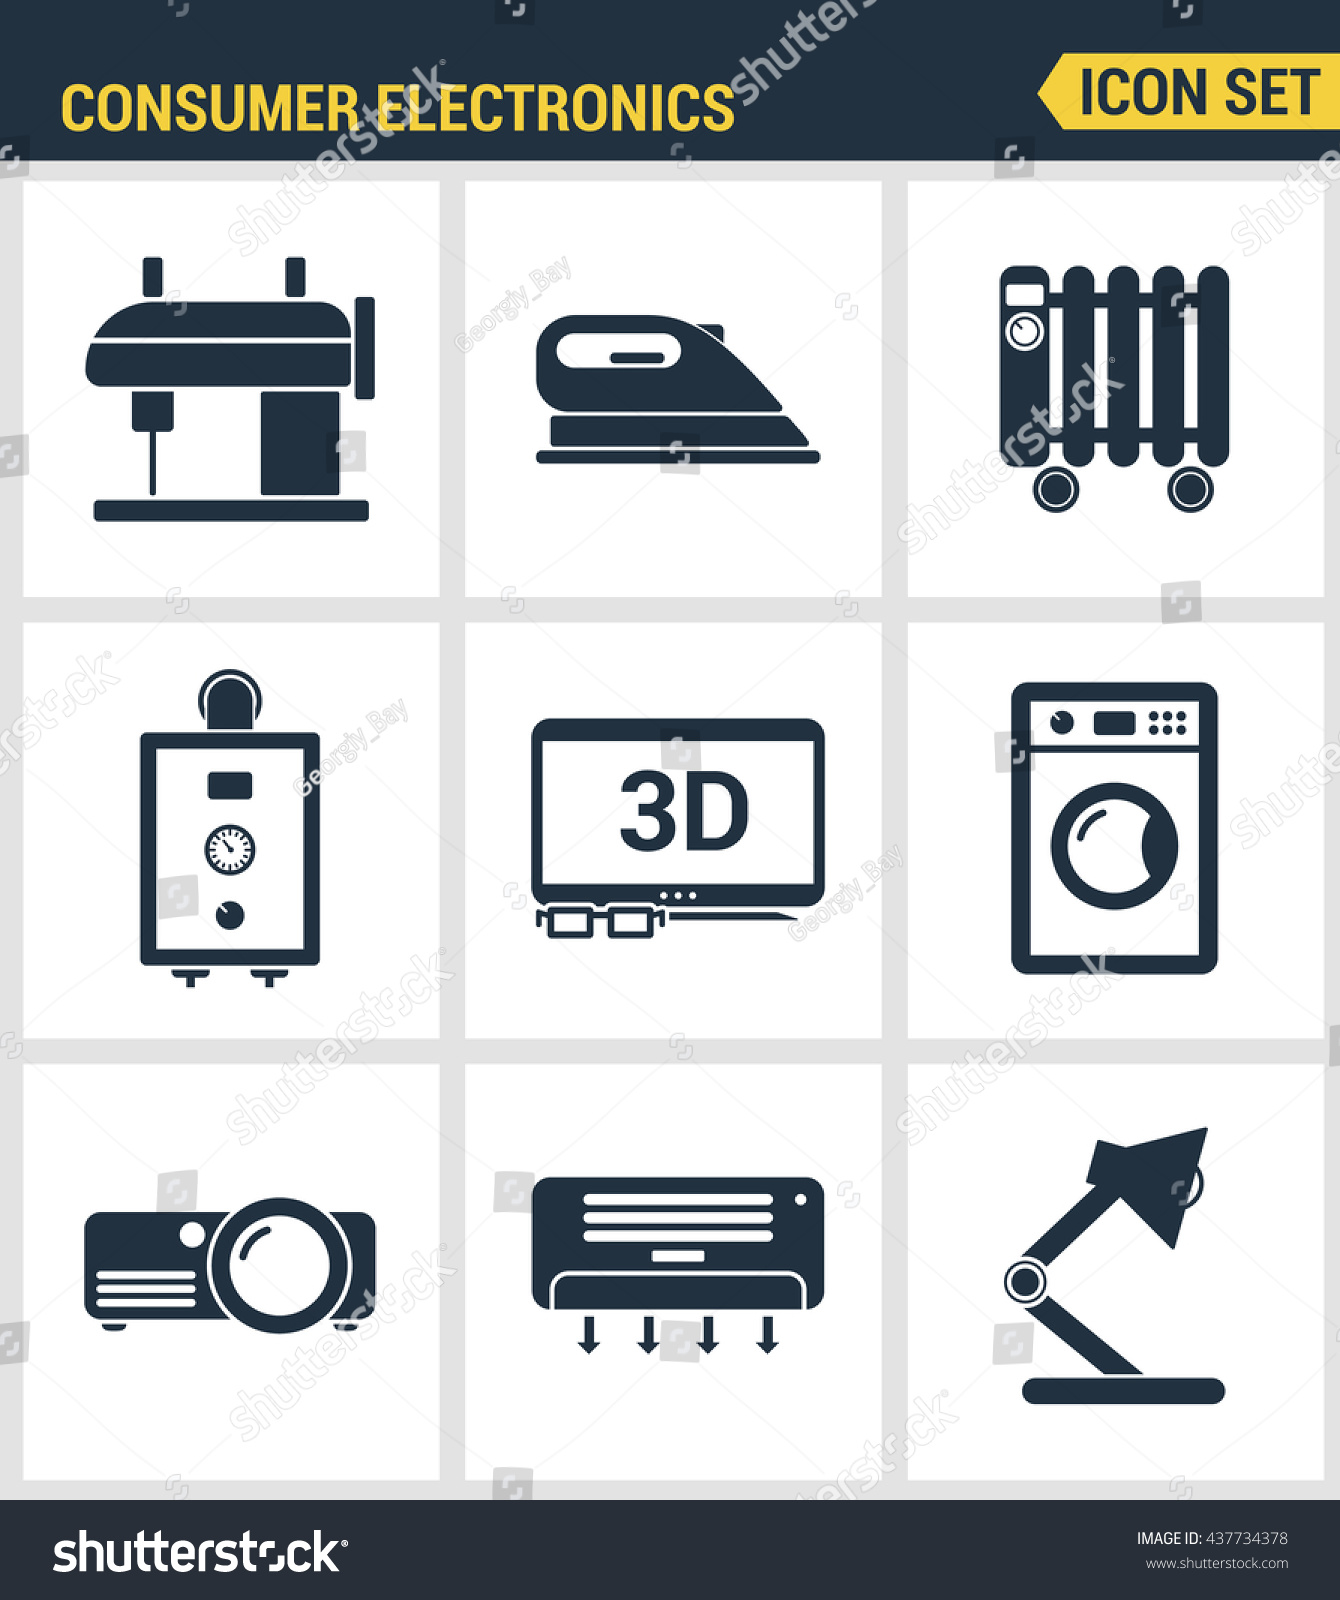 Icons set premium quality home appliances stock vector 437734378 icons set premium quality of home appliances household consumer electronics modern pictogram collection flat biocorpaavc